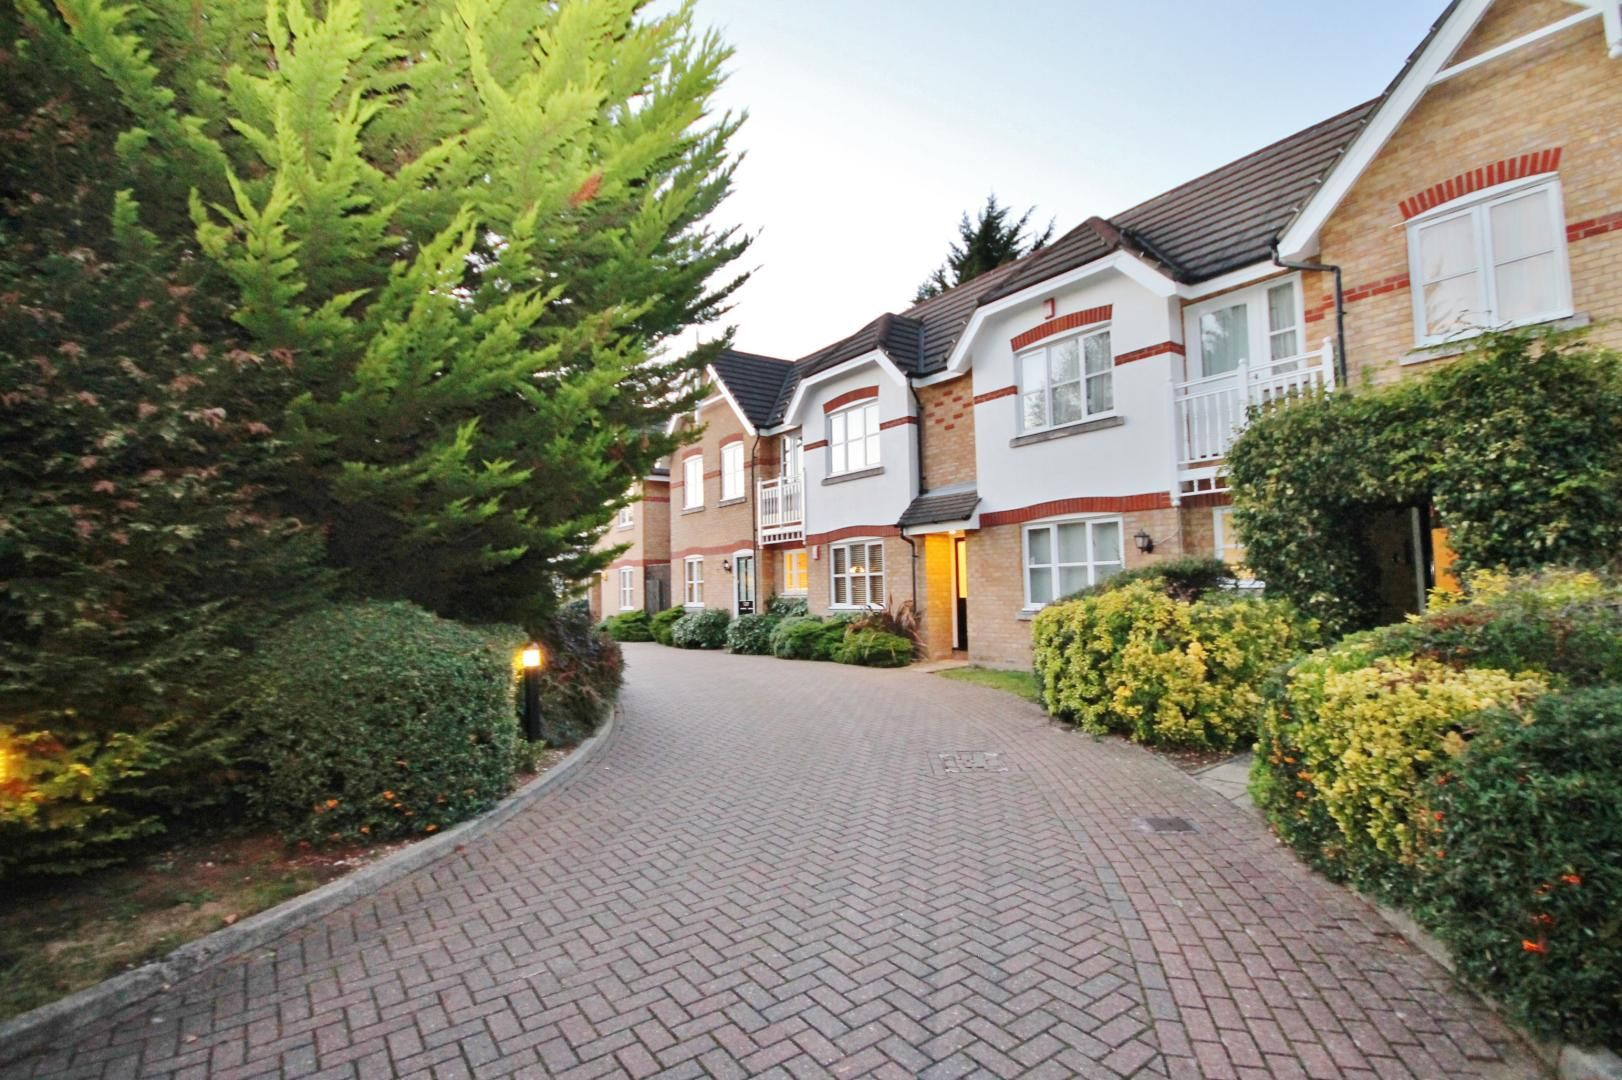 2 bed flat for sale in Whittington Mews - Property Image 1